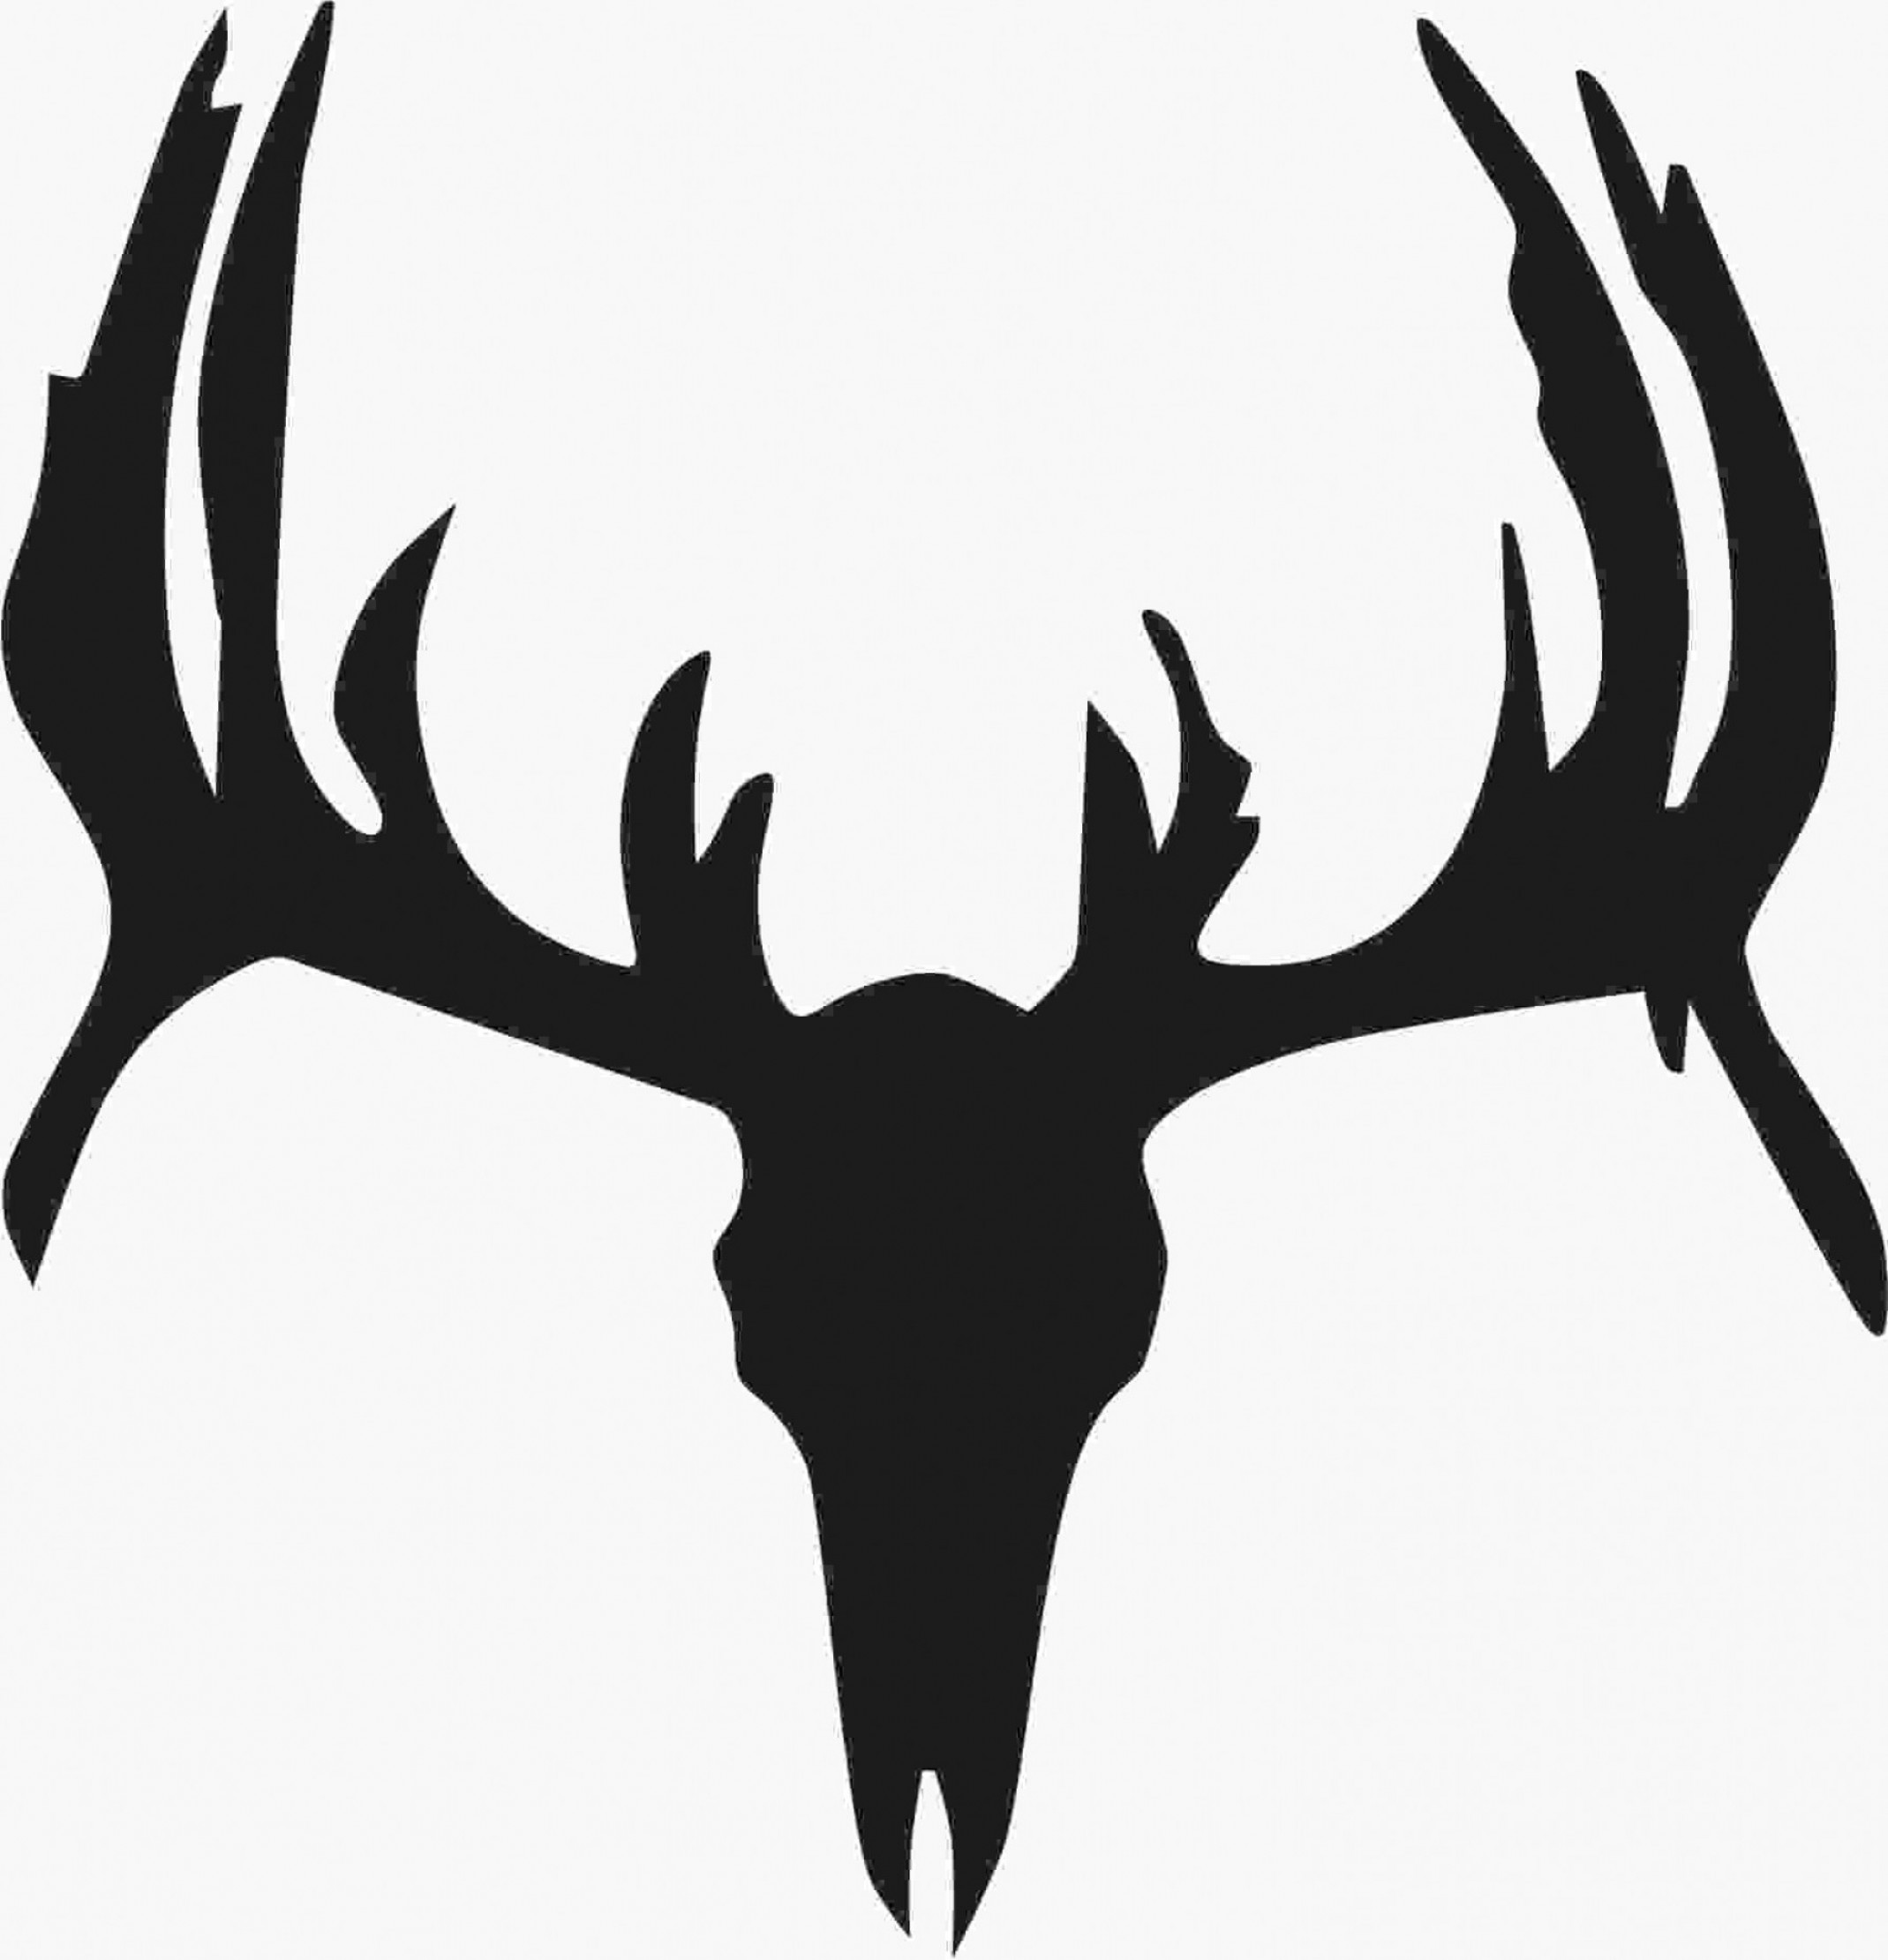 Deer Head Silhouette Royalty Free Vector Image Stuning.